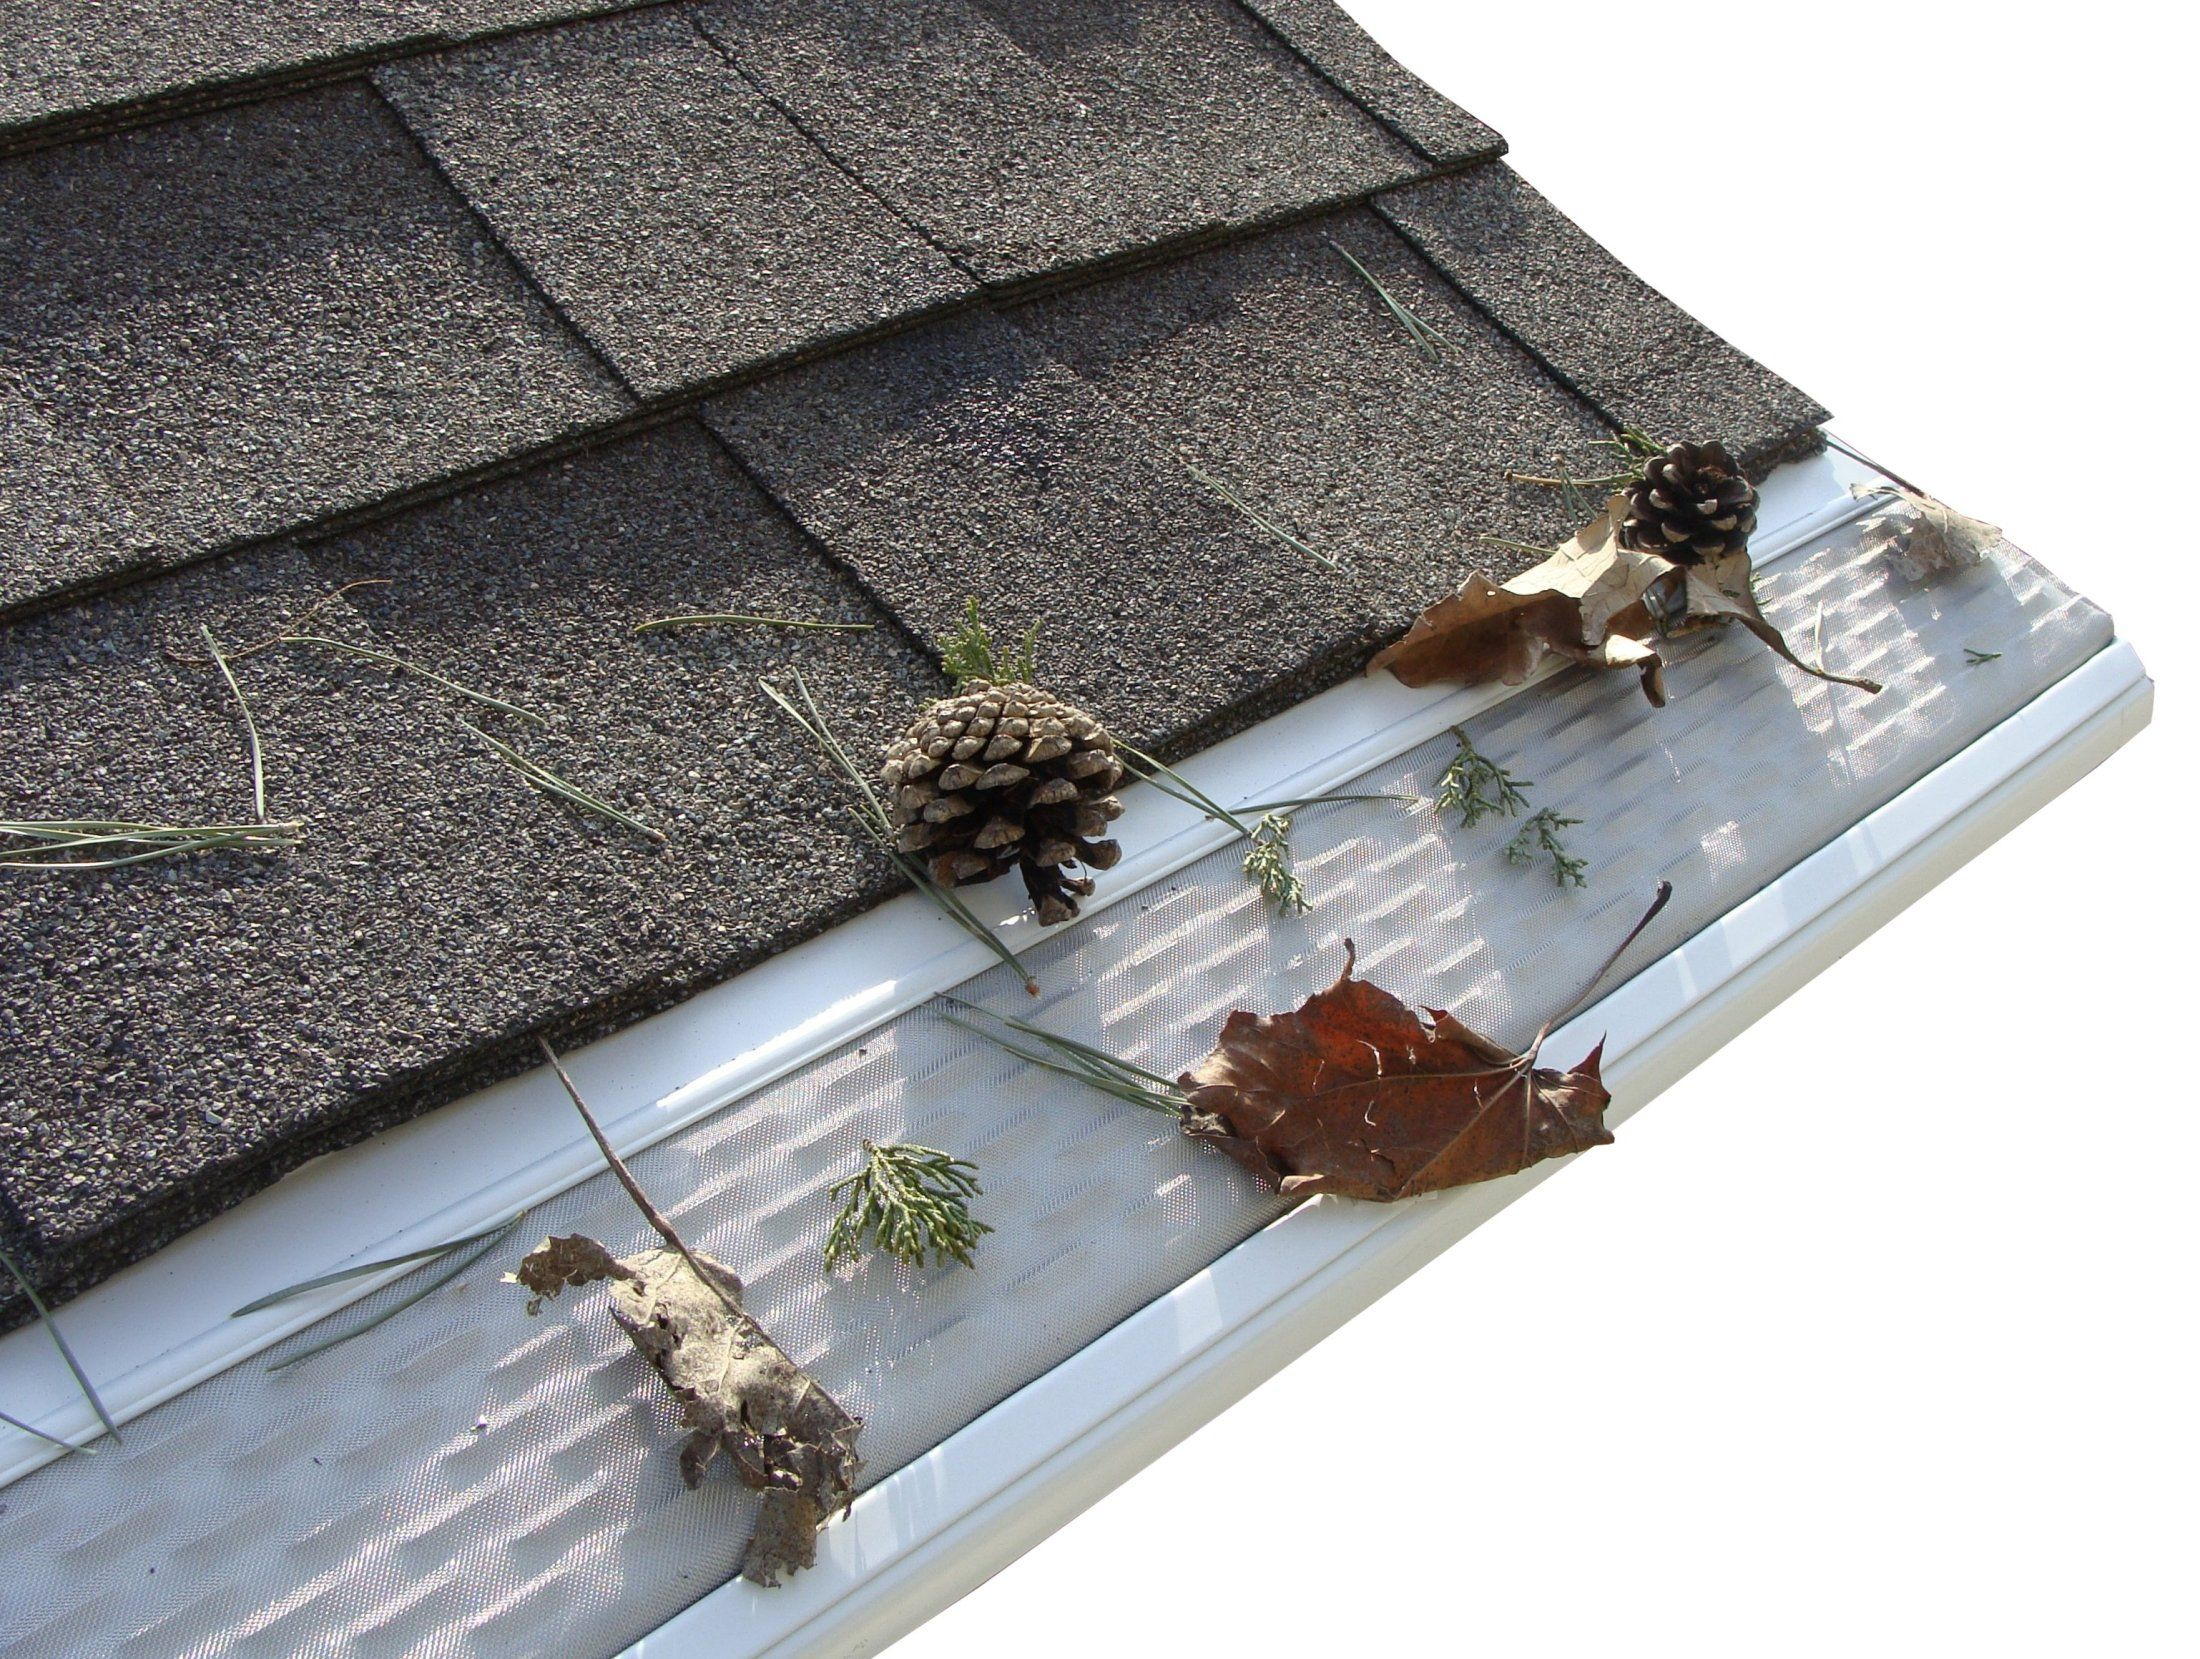 Professional Gutter And Downspout Cleaning Chicago And Suburbs Gutter Guard Gutter Gutters